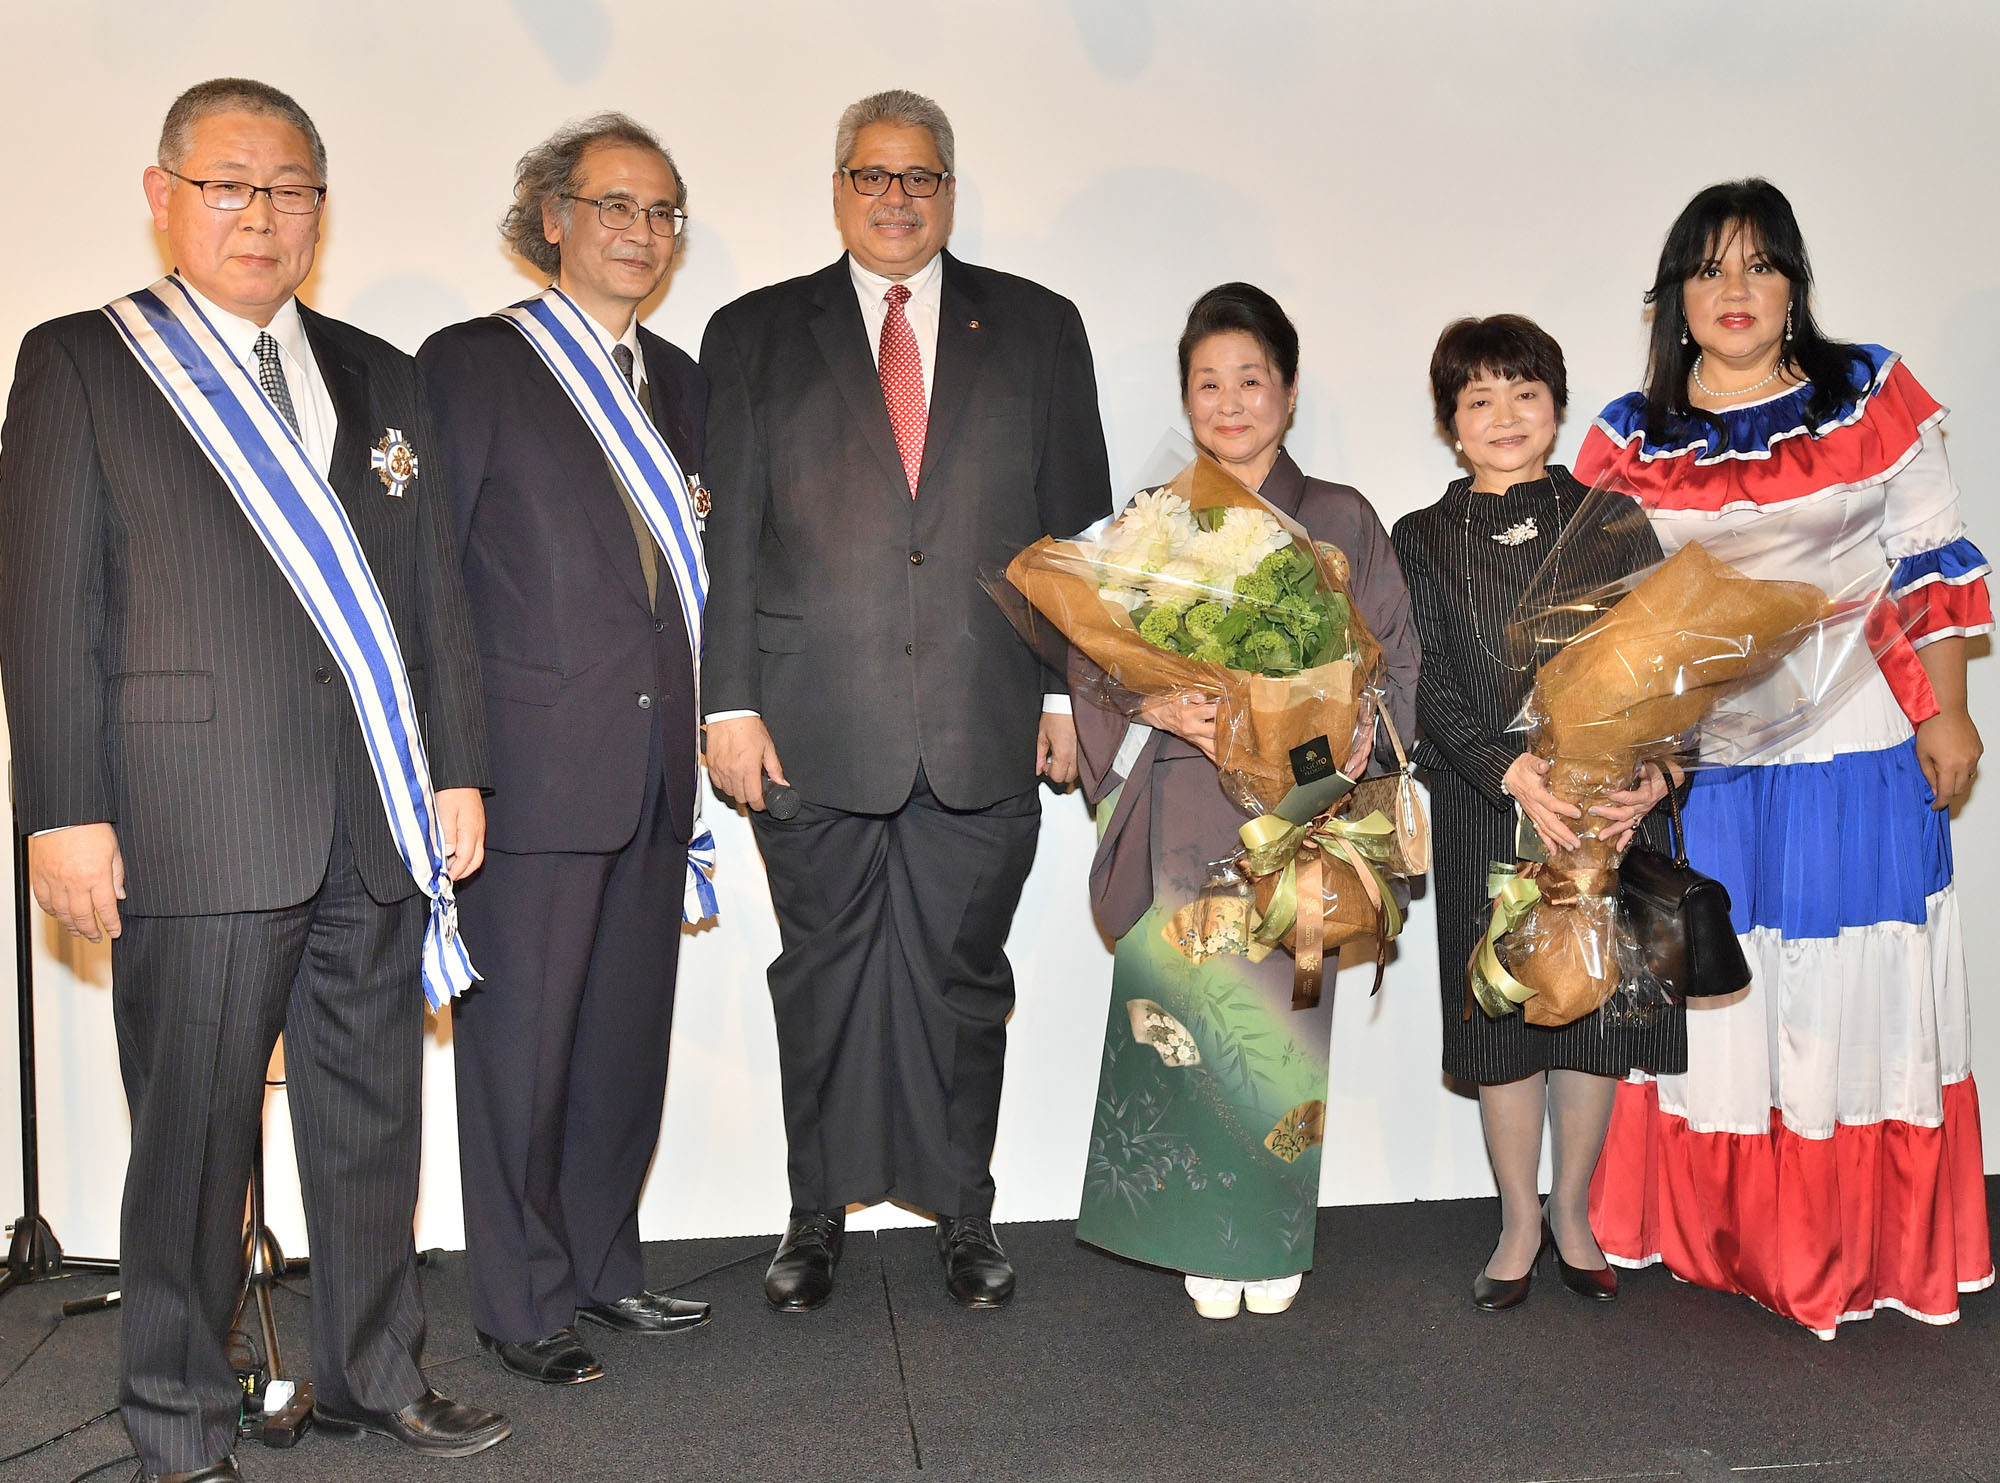 Dominican Ambassador Hector Dominguez (third from left) joins Takashi Fuchigami (left) and Soichi Sato (second from left), former ambassadors to the Dominican Republic, at a decoration ceremony at the Cervantes Institute in Tokyo on Feb. 27. Fuchigami and Sato received an Order of Merit during      a reception to mark the 174th anniversary of the Dominican Republic's independence. The former envoys are joined by their wives (from left), Noriko and Hiroko, as well as Alexandra Alvarez. | YOSHIAKI MIURA